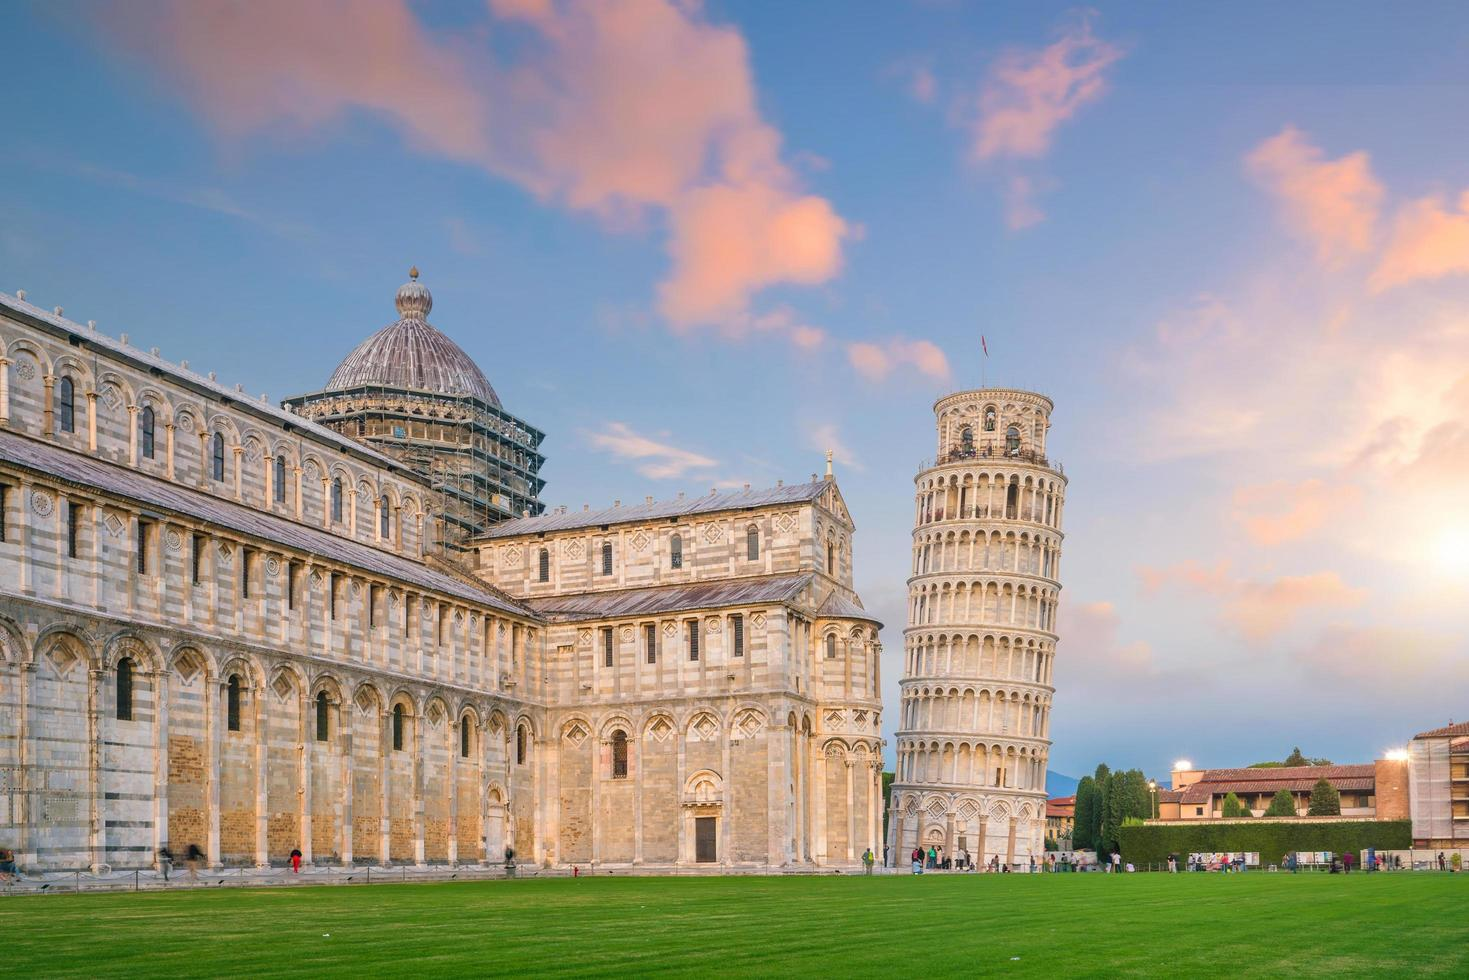 Pisa Cathedral and the Leaning Tower in Pisa. photo